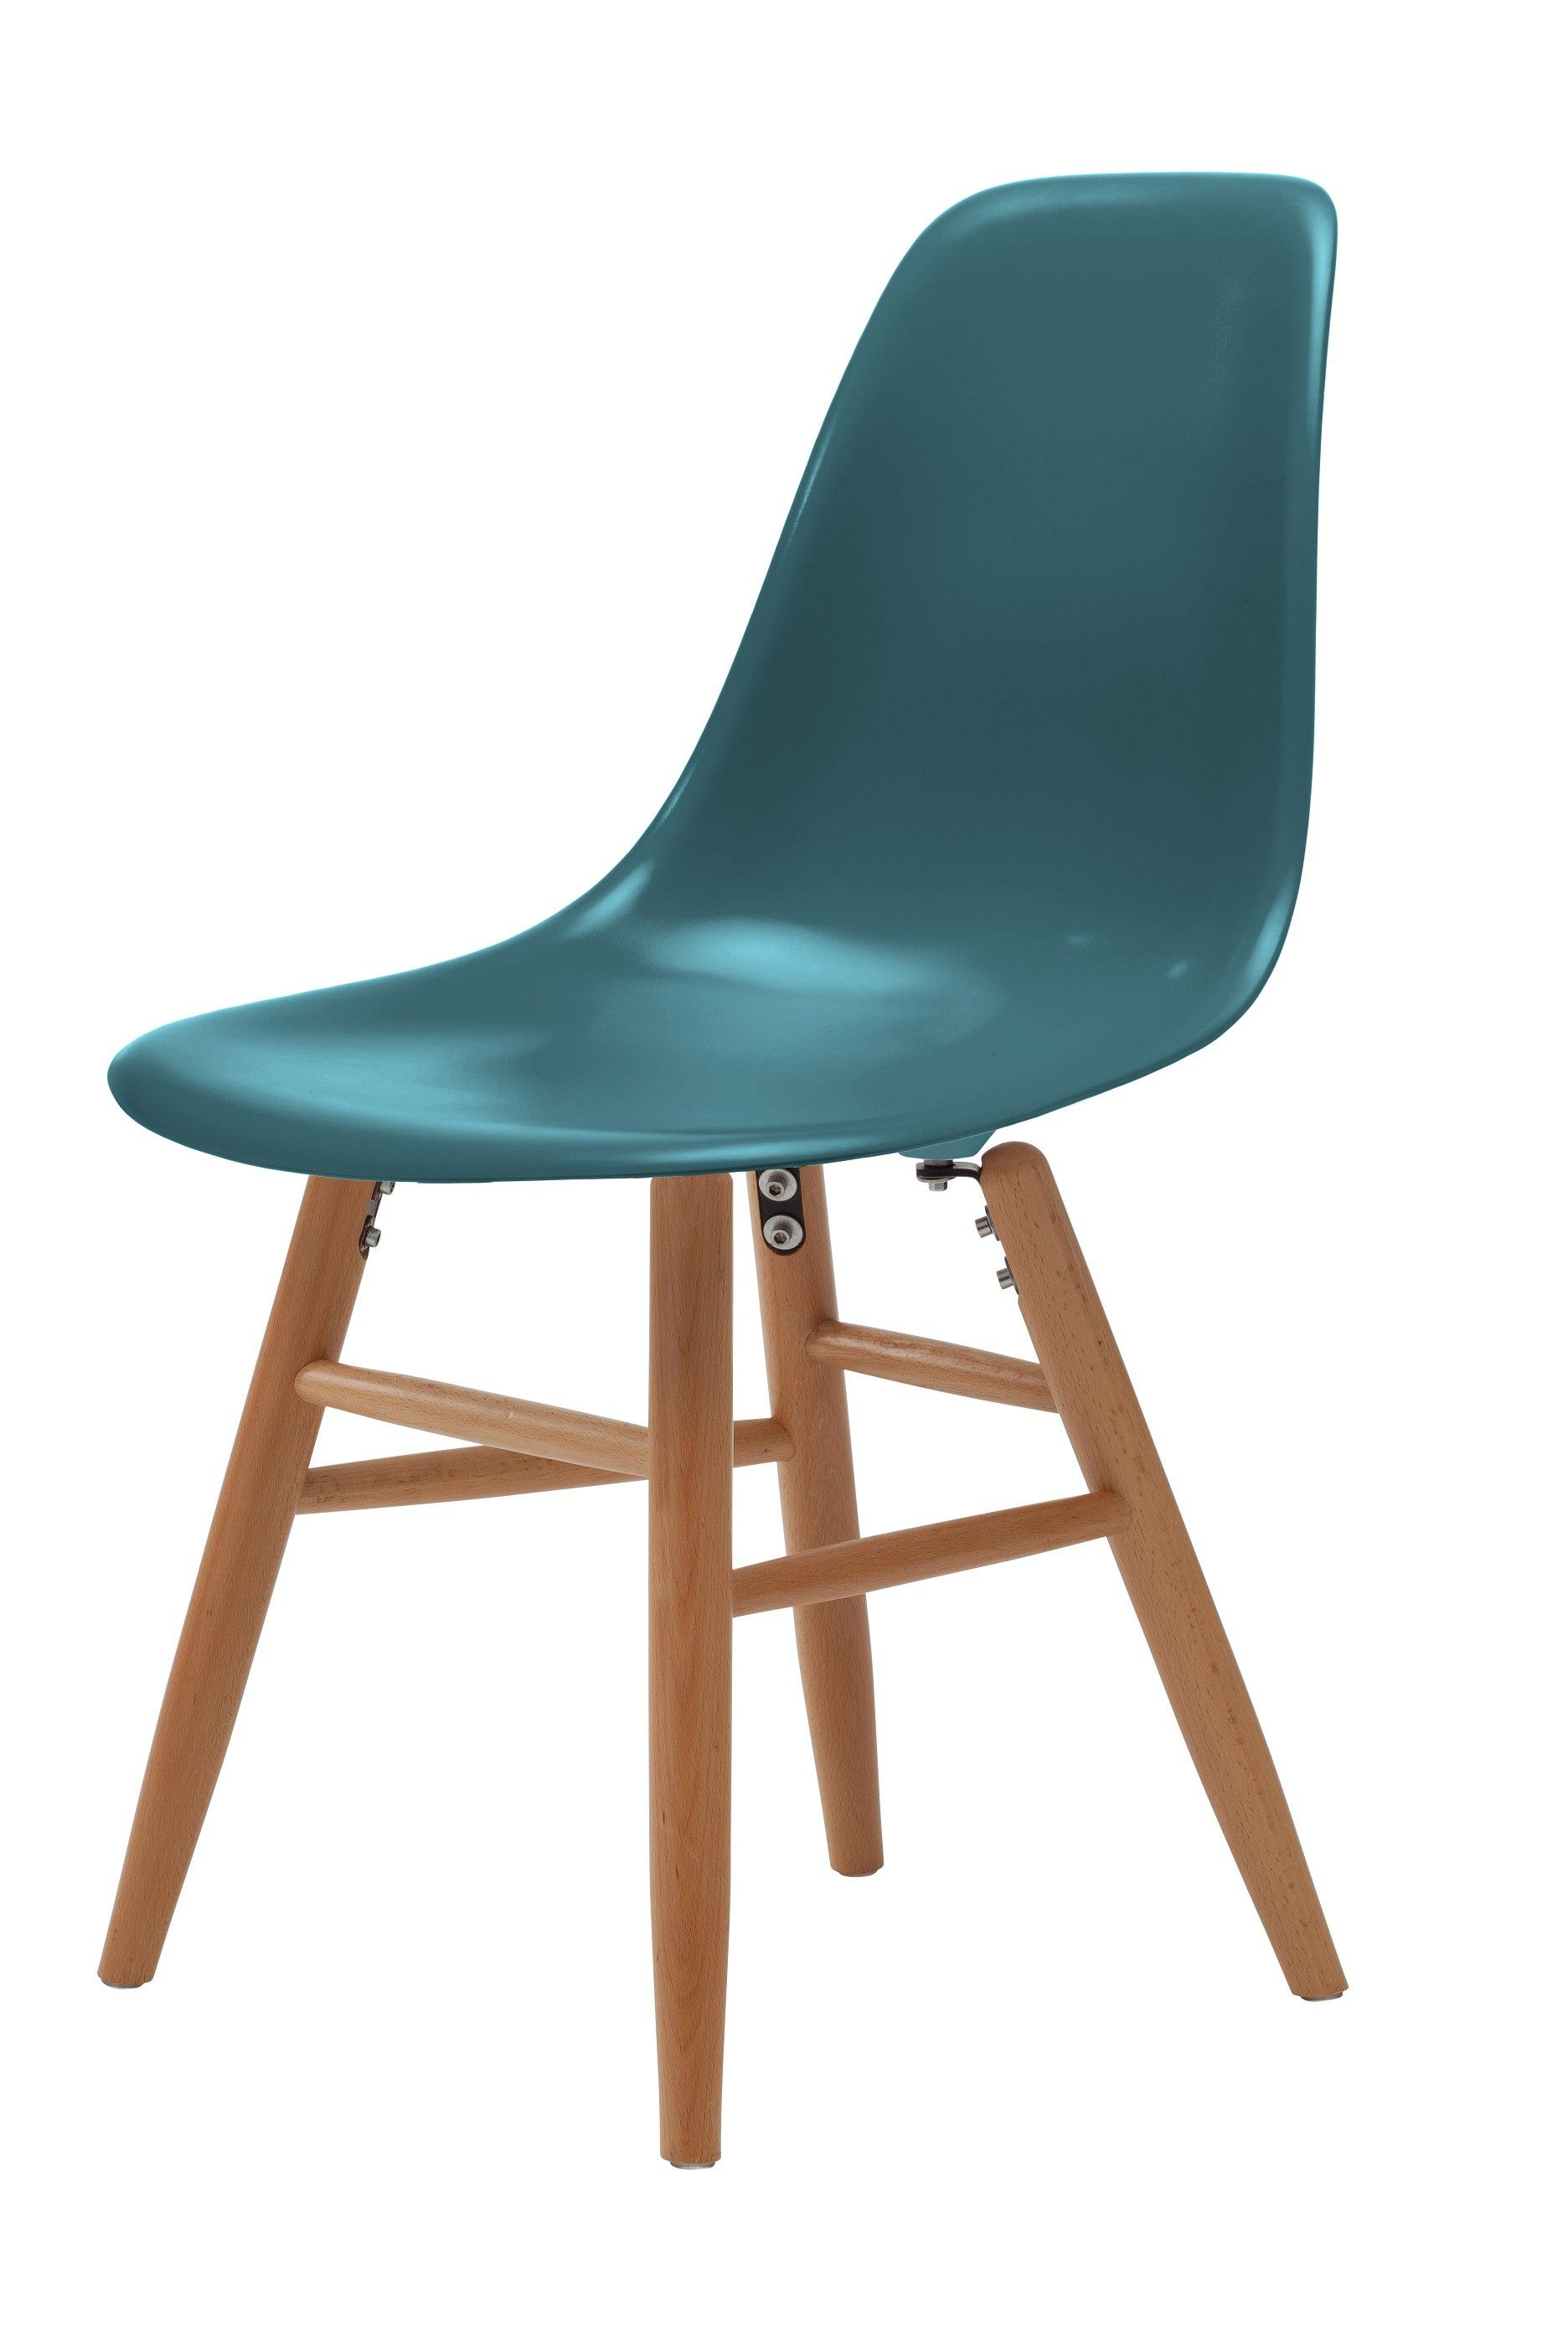 Replica Charles Eames Chair Solid Wood Legs Our